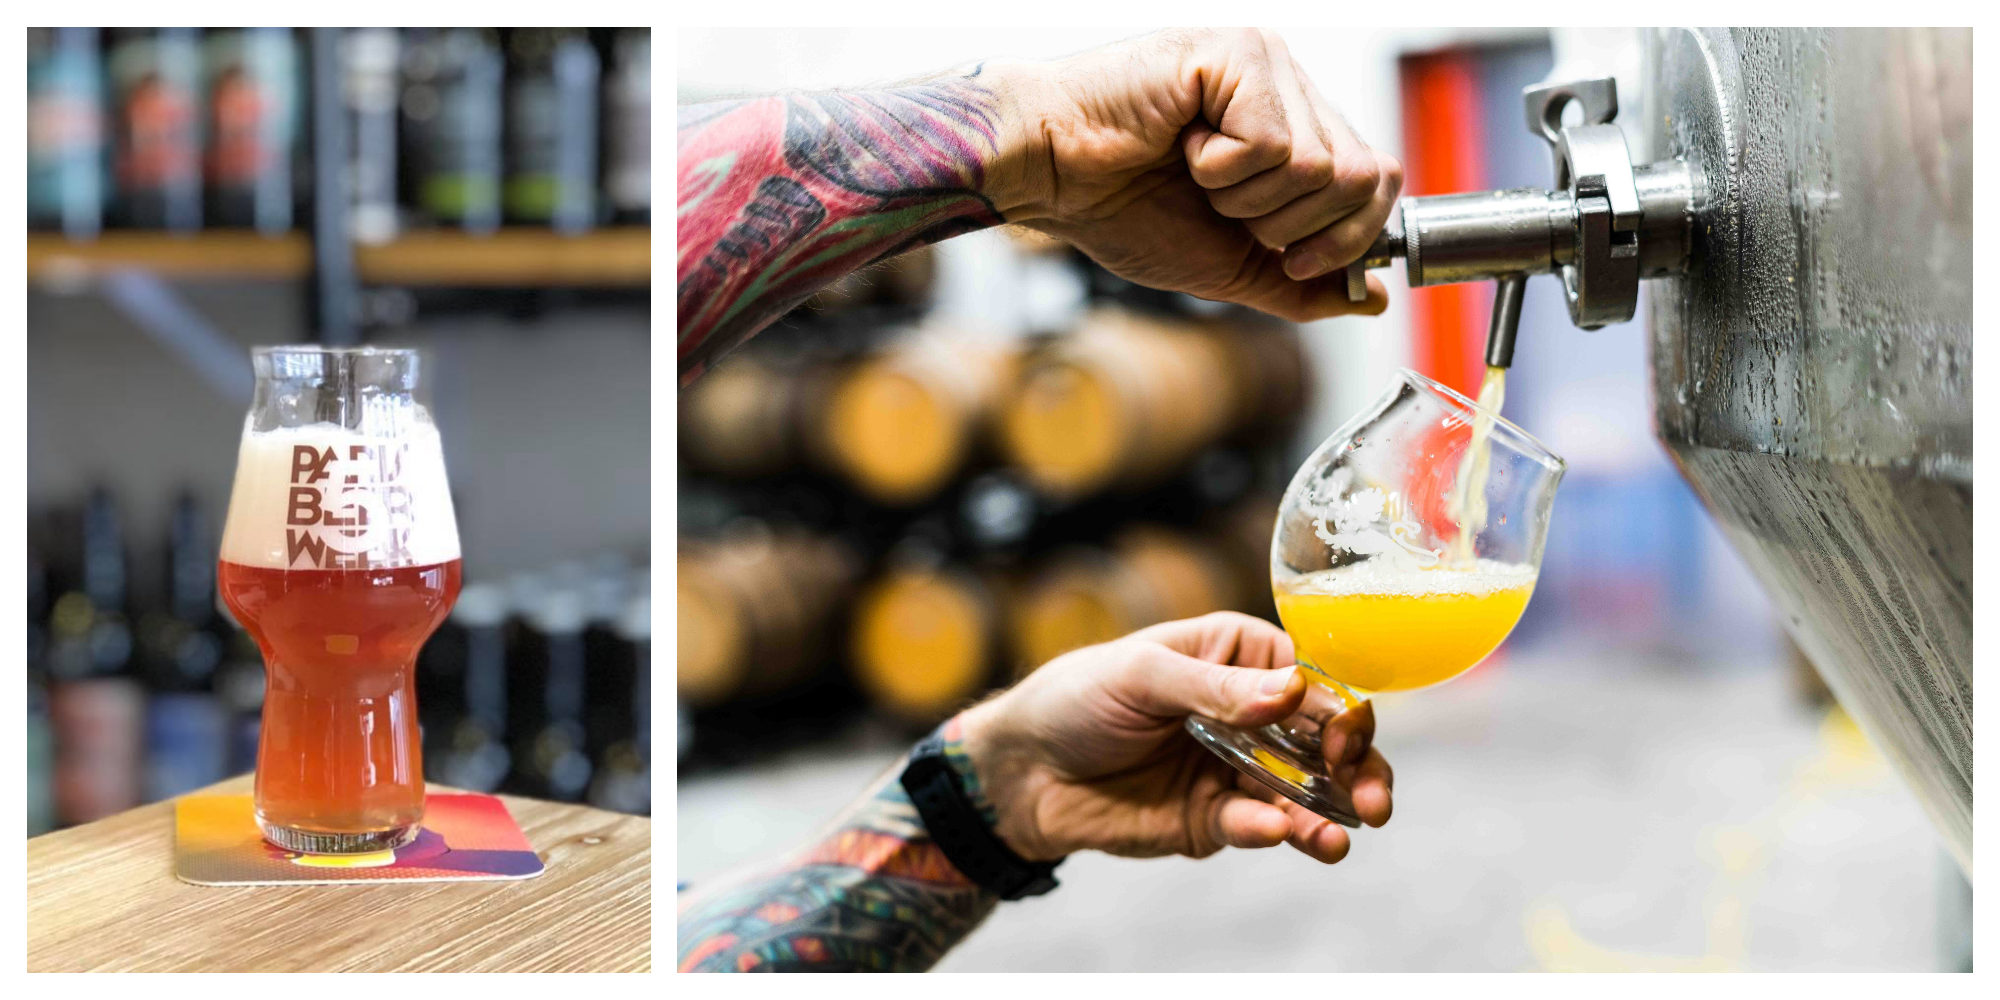 Celebrating Paris Beer Week with a pint of craft beer at Superbières in Paris (left). A tattooed man serving a pint of craft beer from the tap (right).